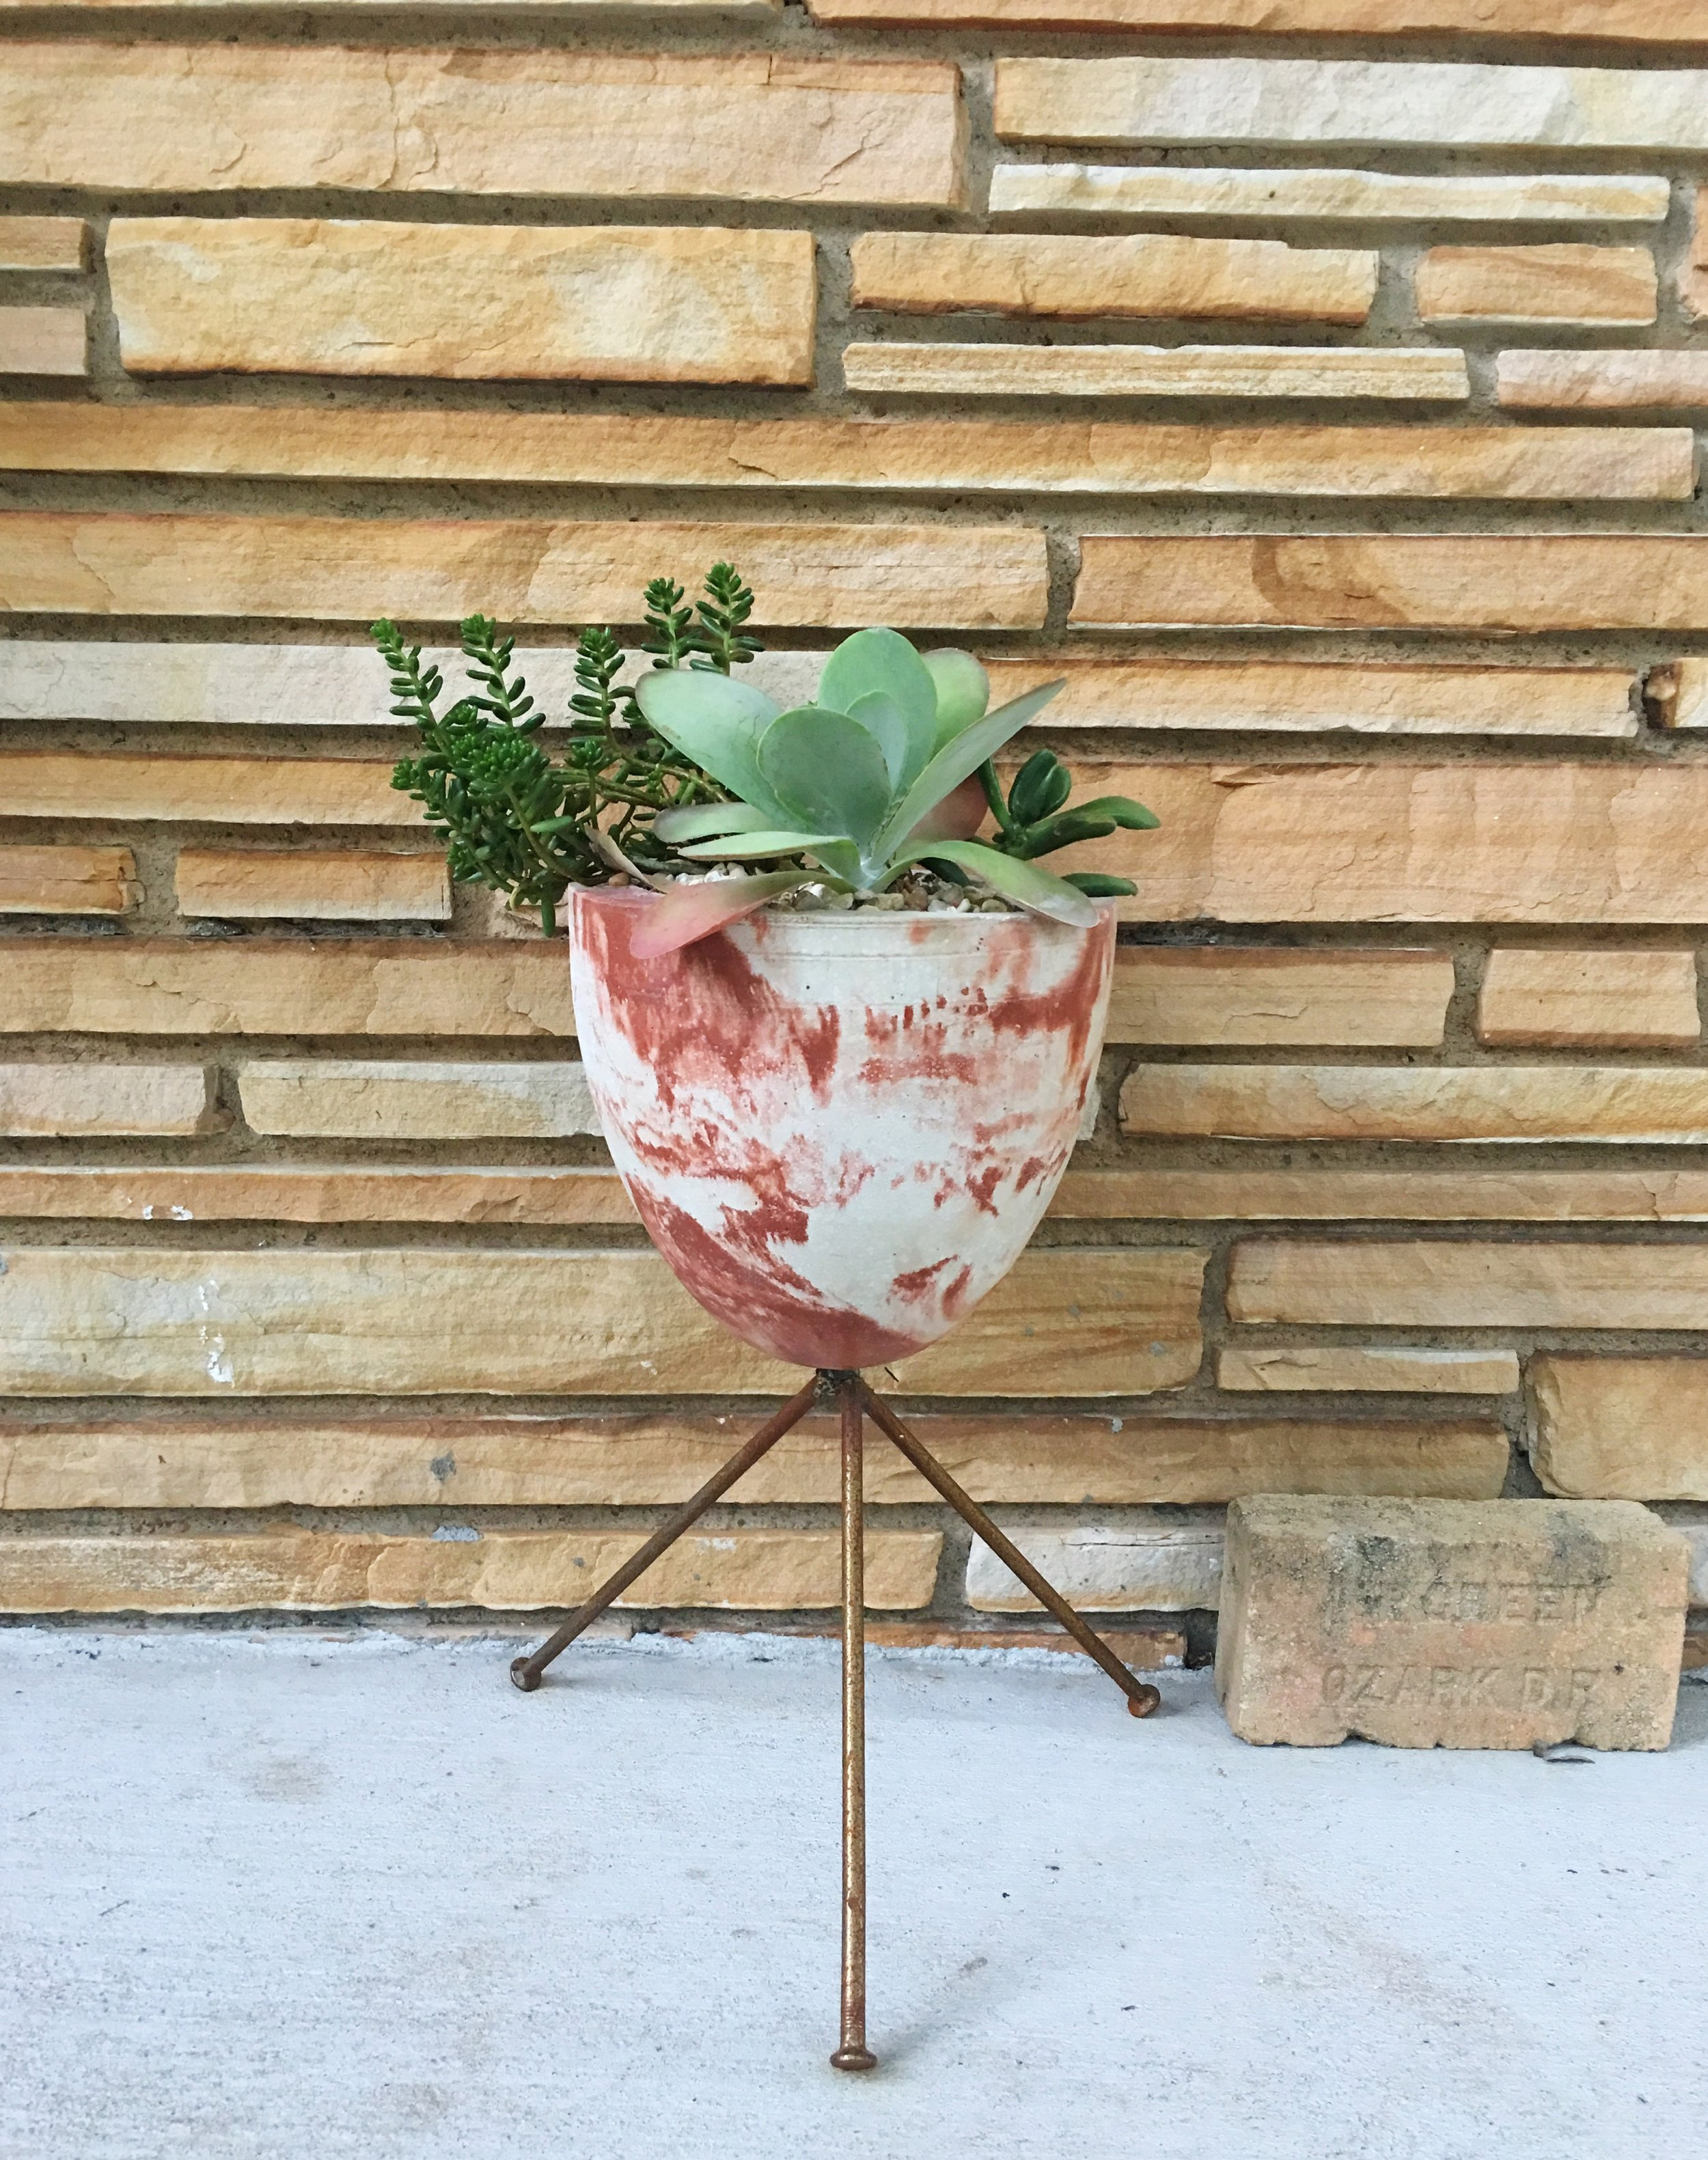 Pretty much in love with this marbled-style bullet planter by local maker Atomic Studios.